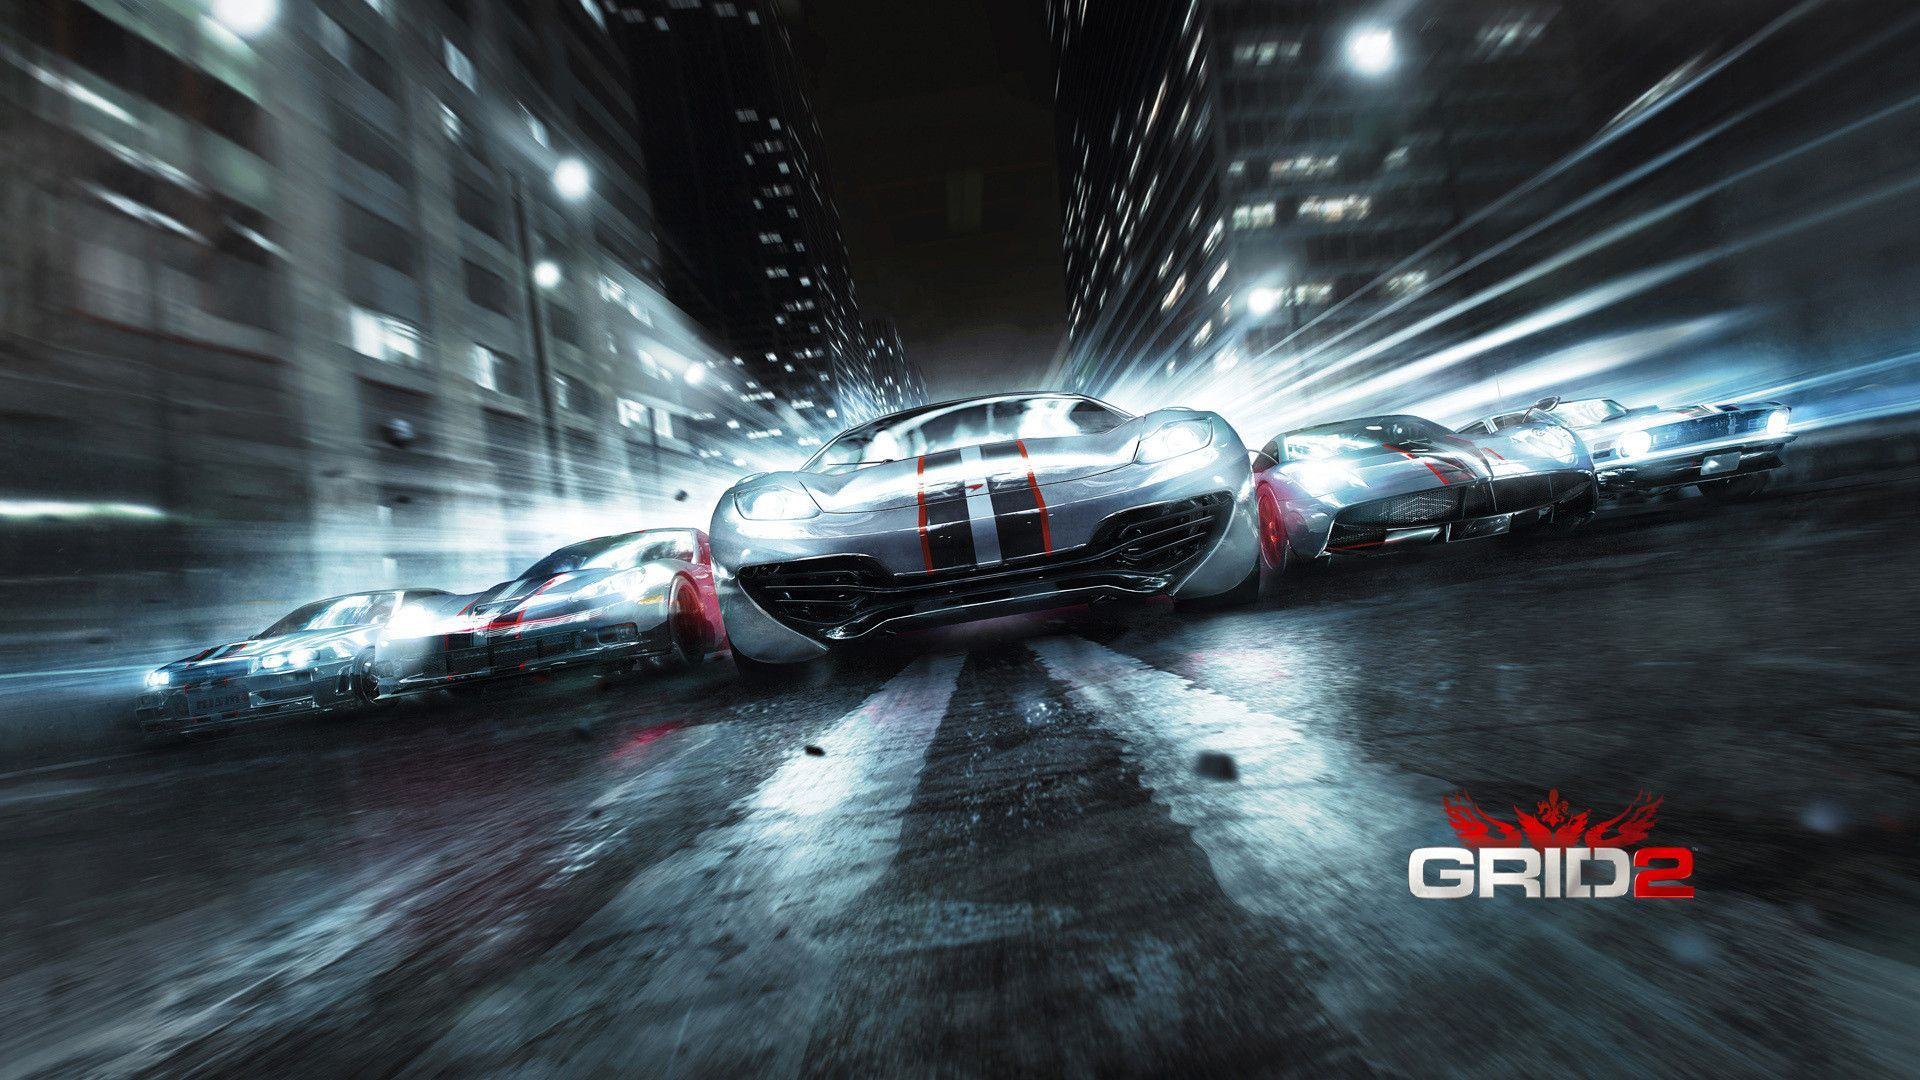 High Resolution Gaming Wallpapers: Grid 2 Game Wallpaper High Resolution Pics